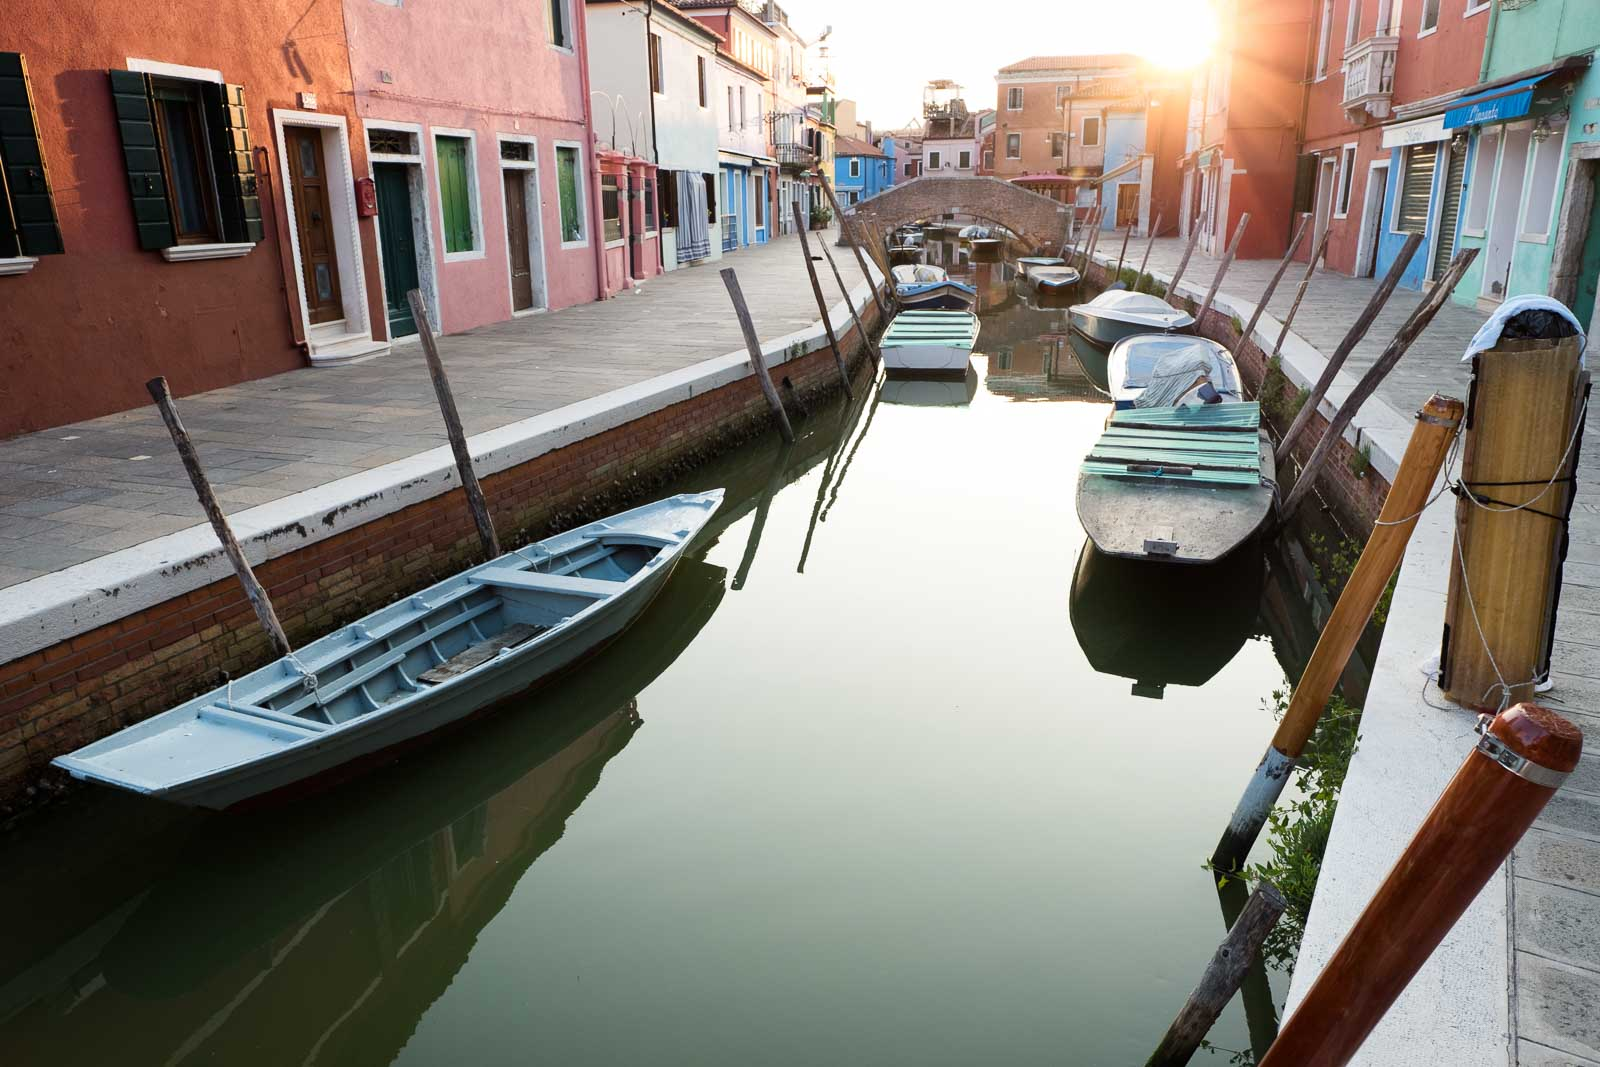 Boats in Venice: how to build a photography portfolio